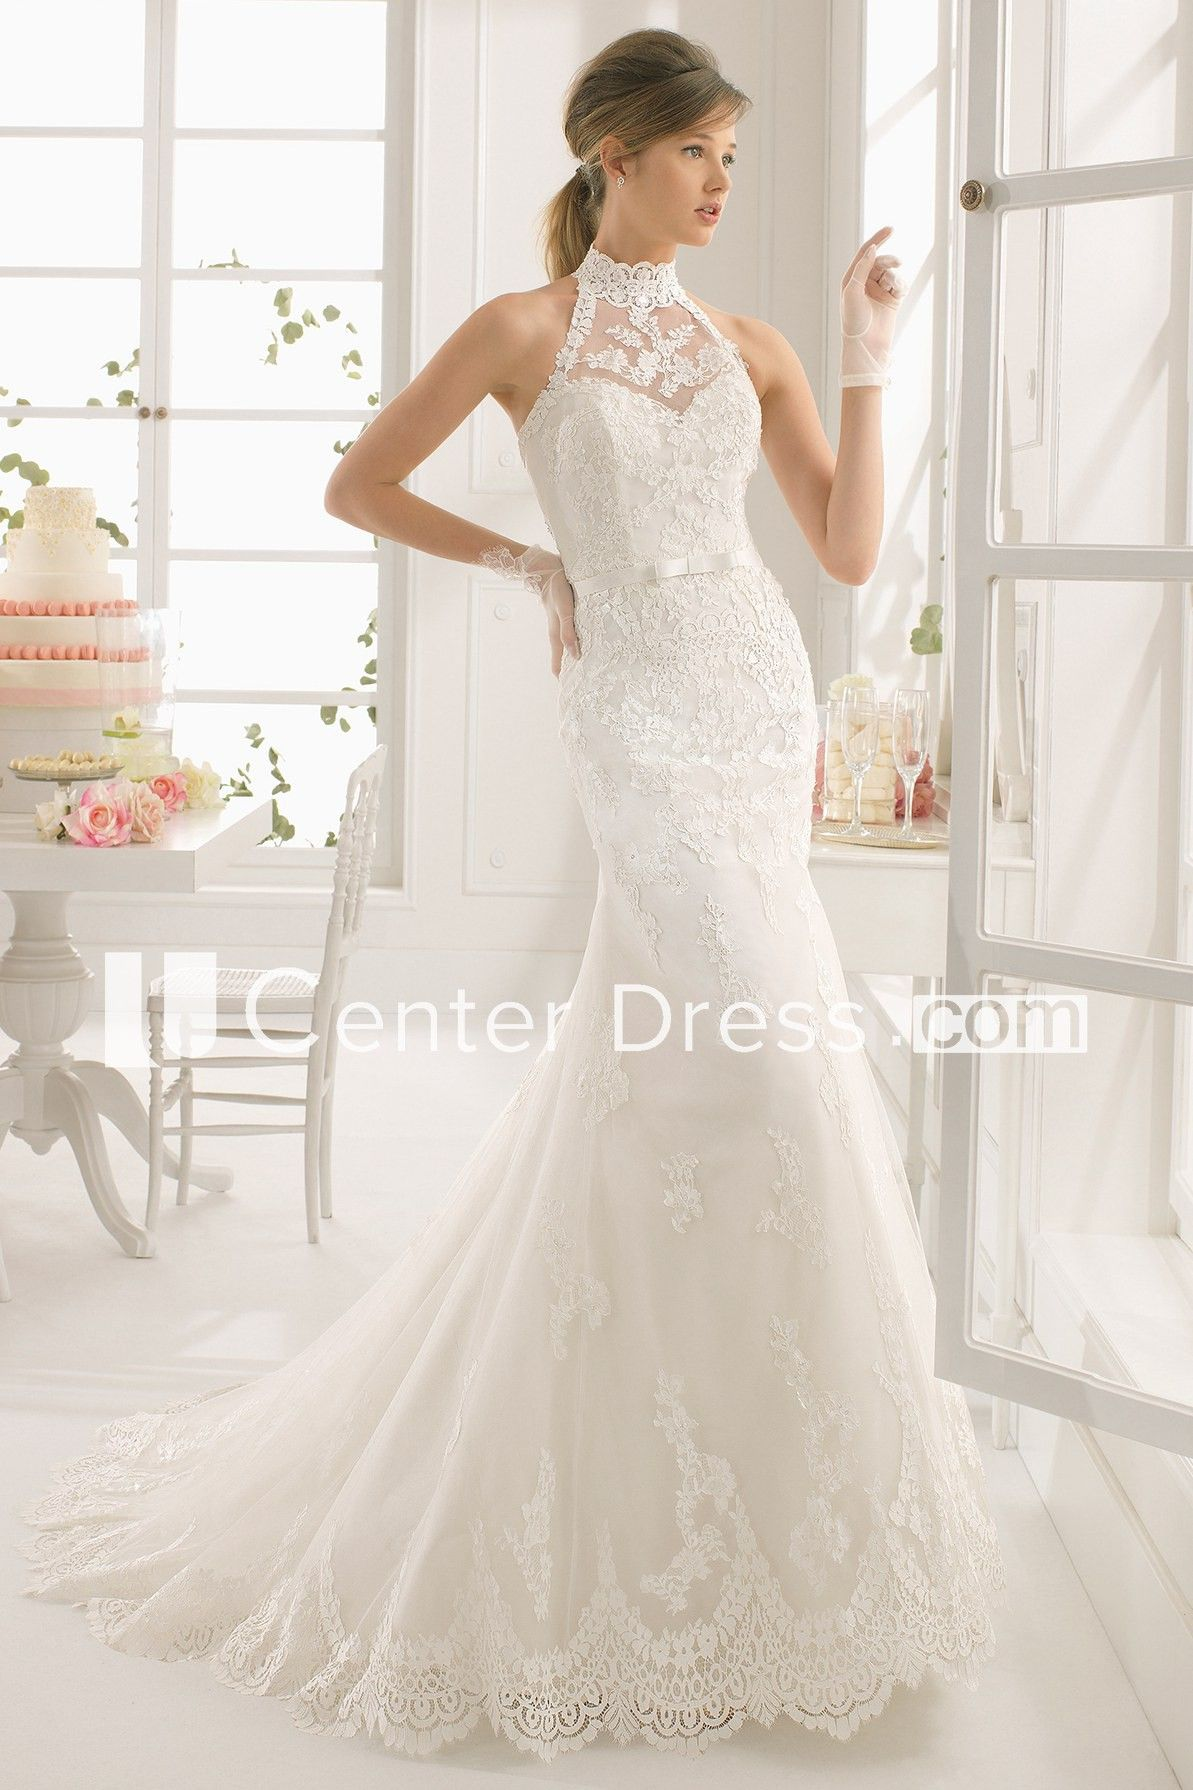 f2f3ce57b74 Sheath High-Neck Maxi Appliqued Sleeveless Lace Wedding Dress - UCenter  Dress